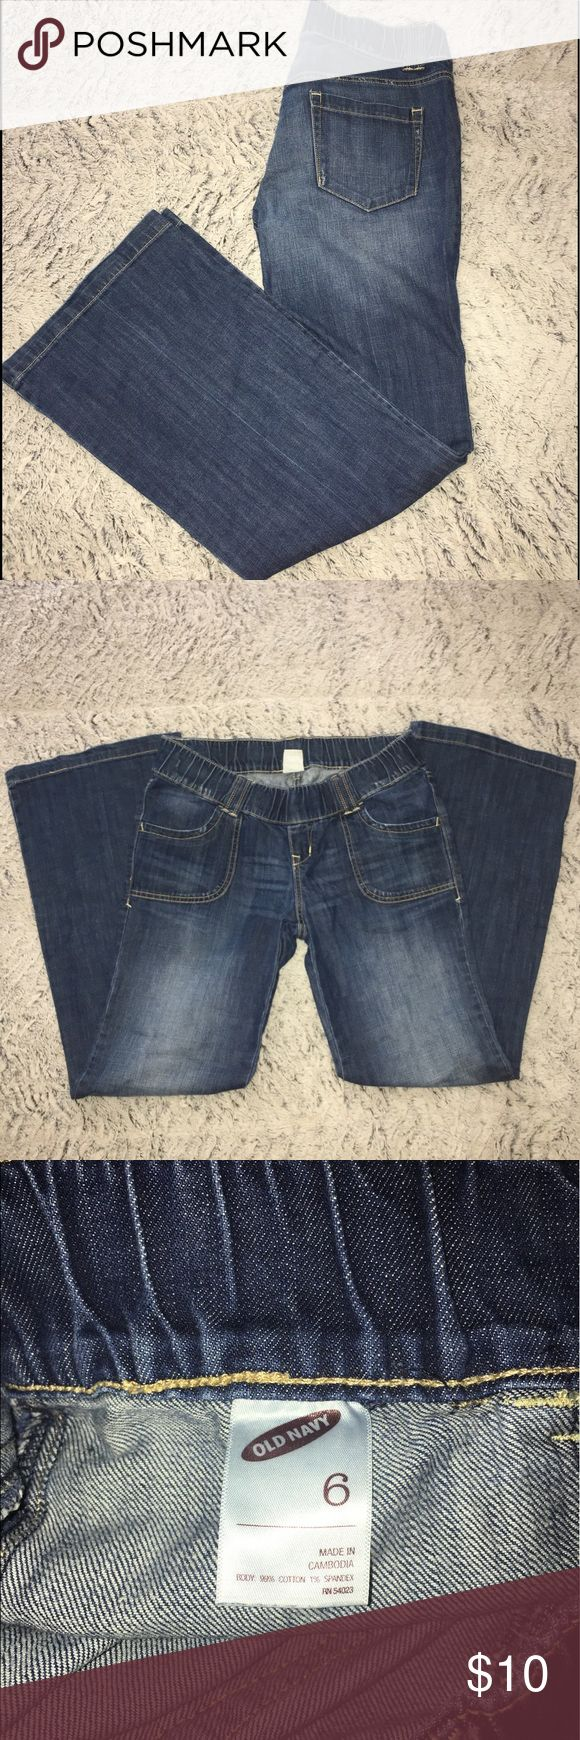 Old Navy Maternity Jeans Old Navy maternity jeans with elastic waist.  Great condition as they were only worn a handful of times. Smoke free/pet free home, cross posted Old Navy Jeans Flare & Wide Leg